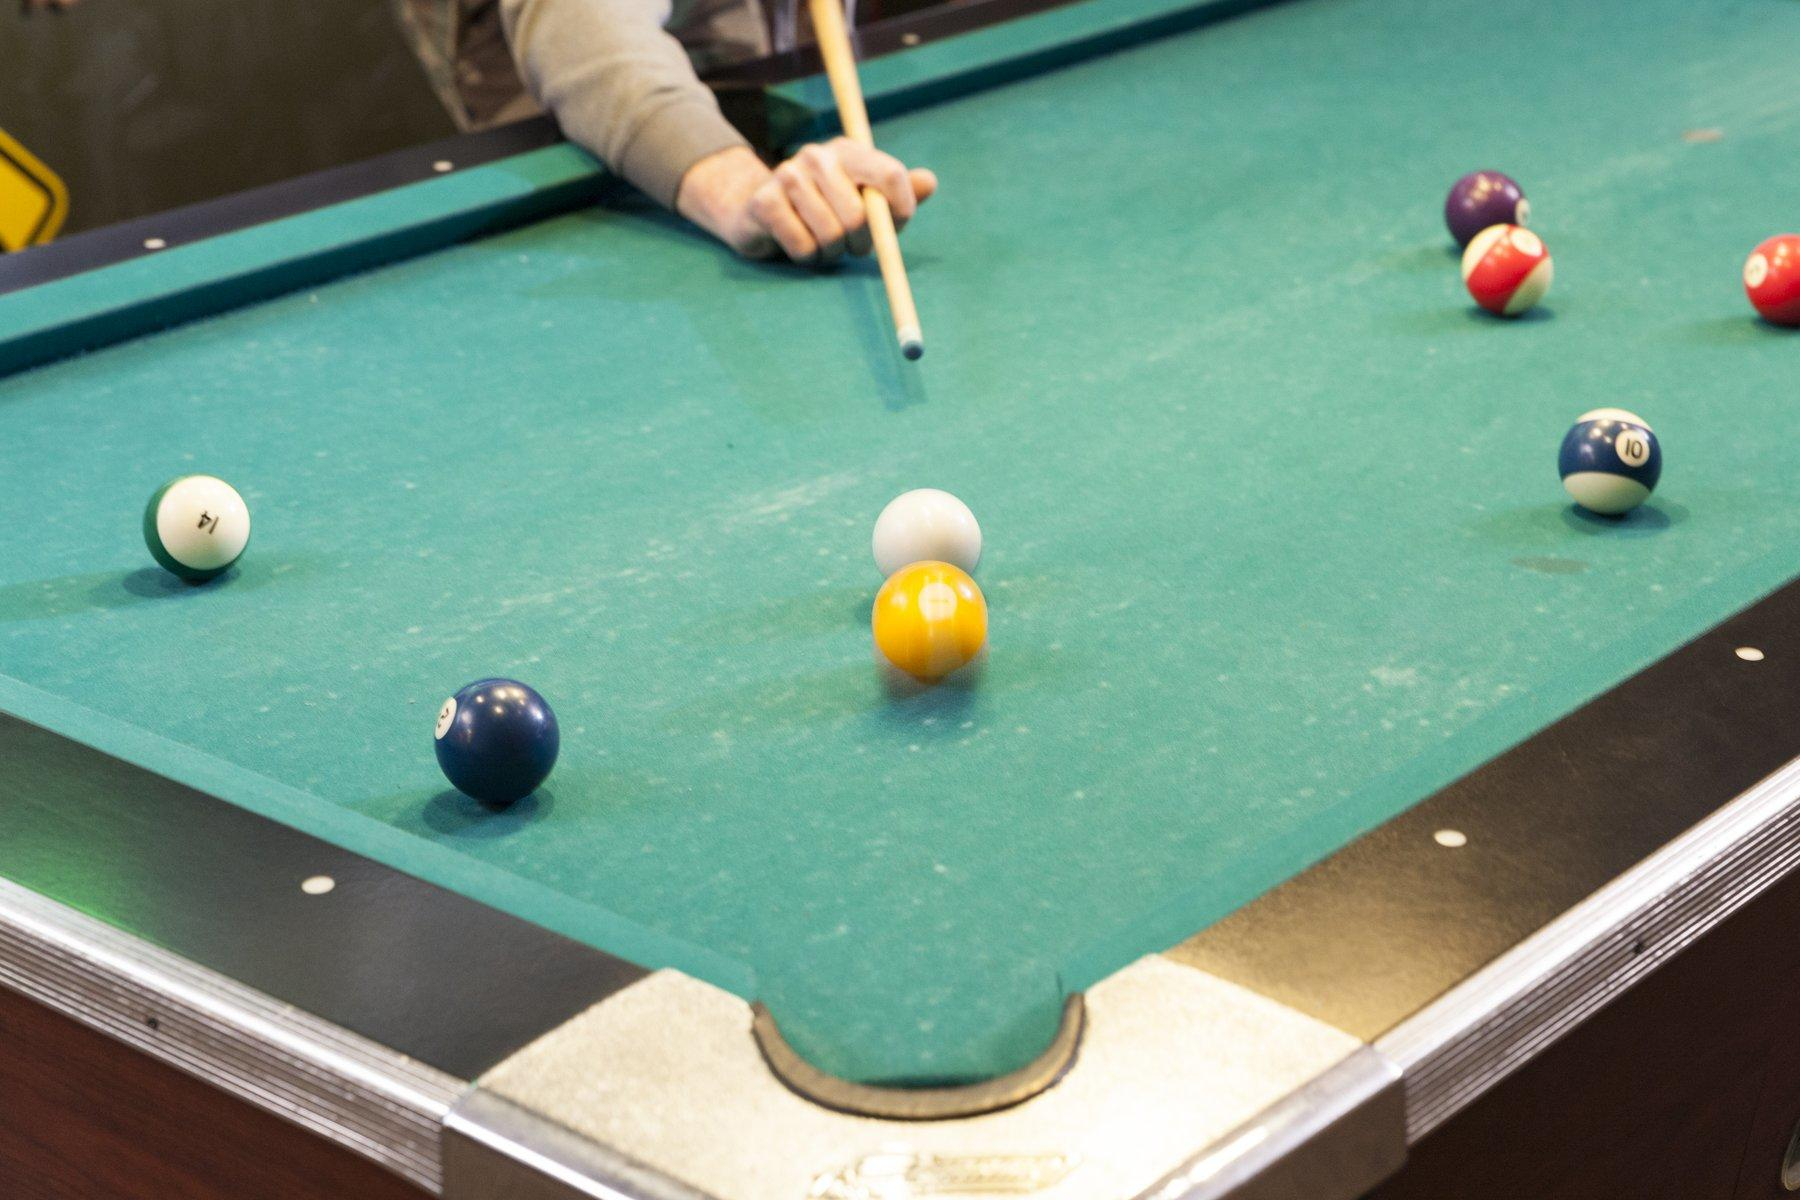 person hitting ball on pool table